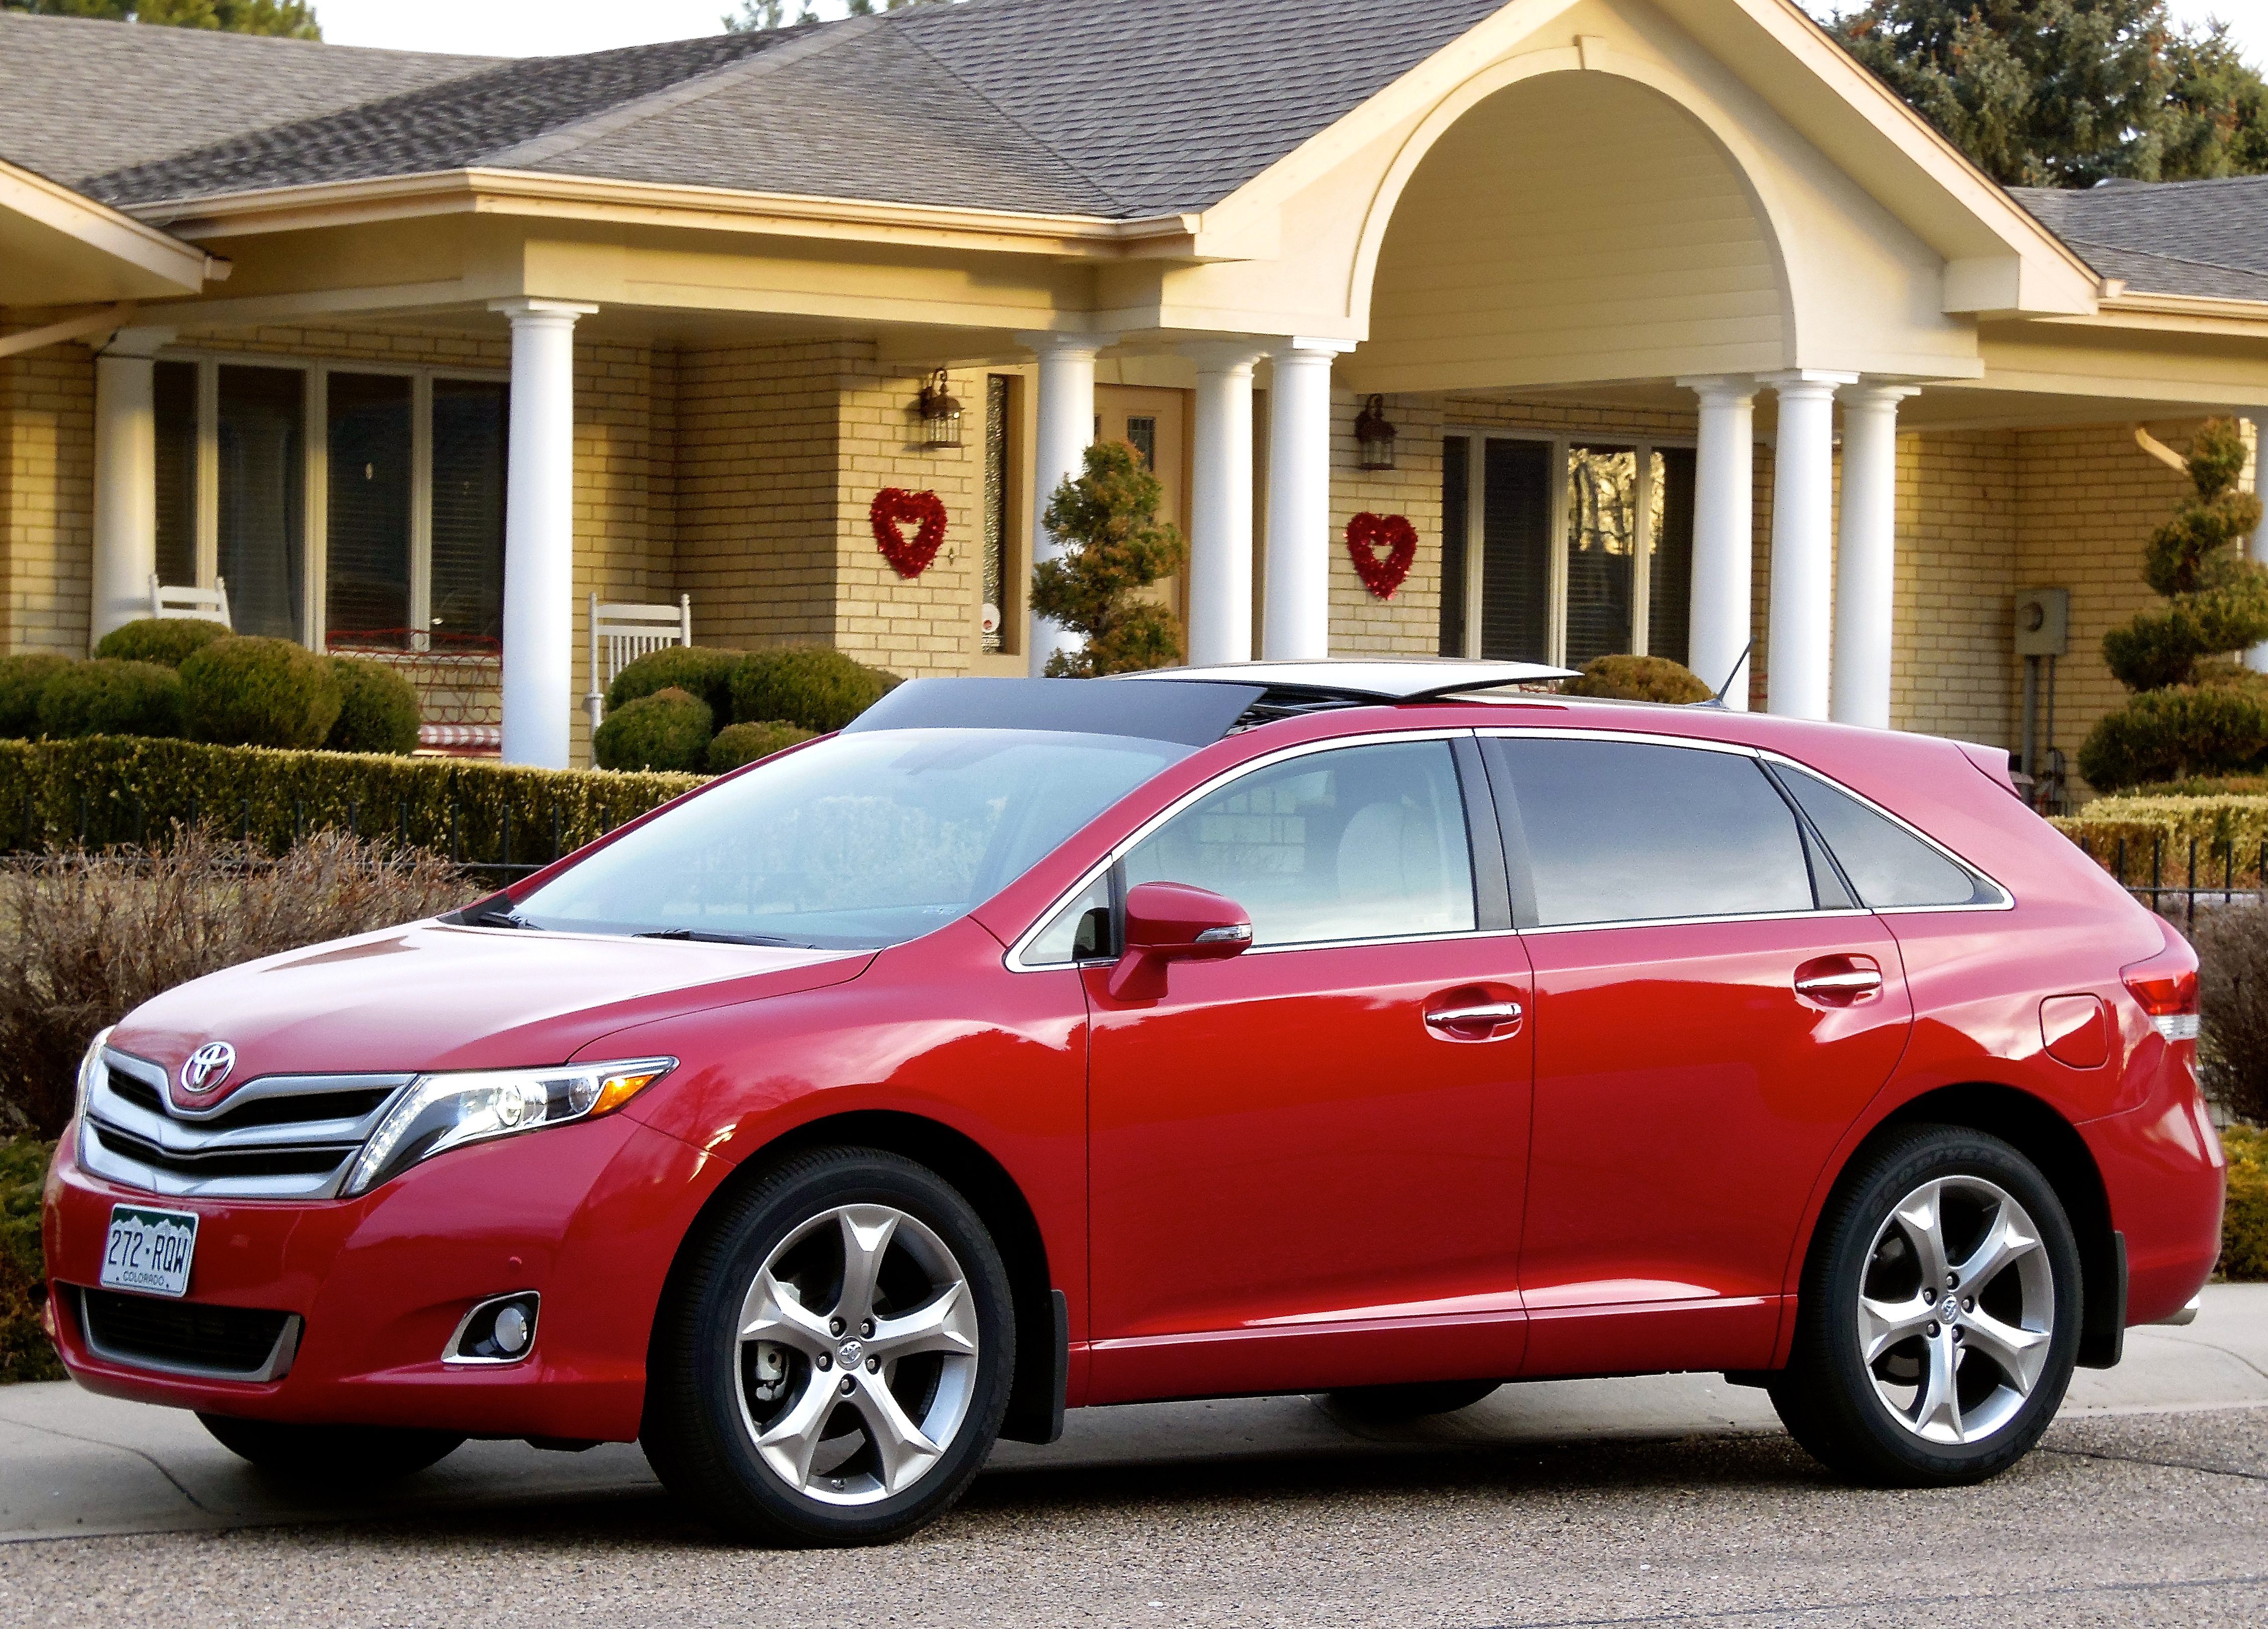 reviews design ratings performance venza review features toyota